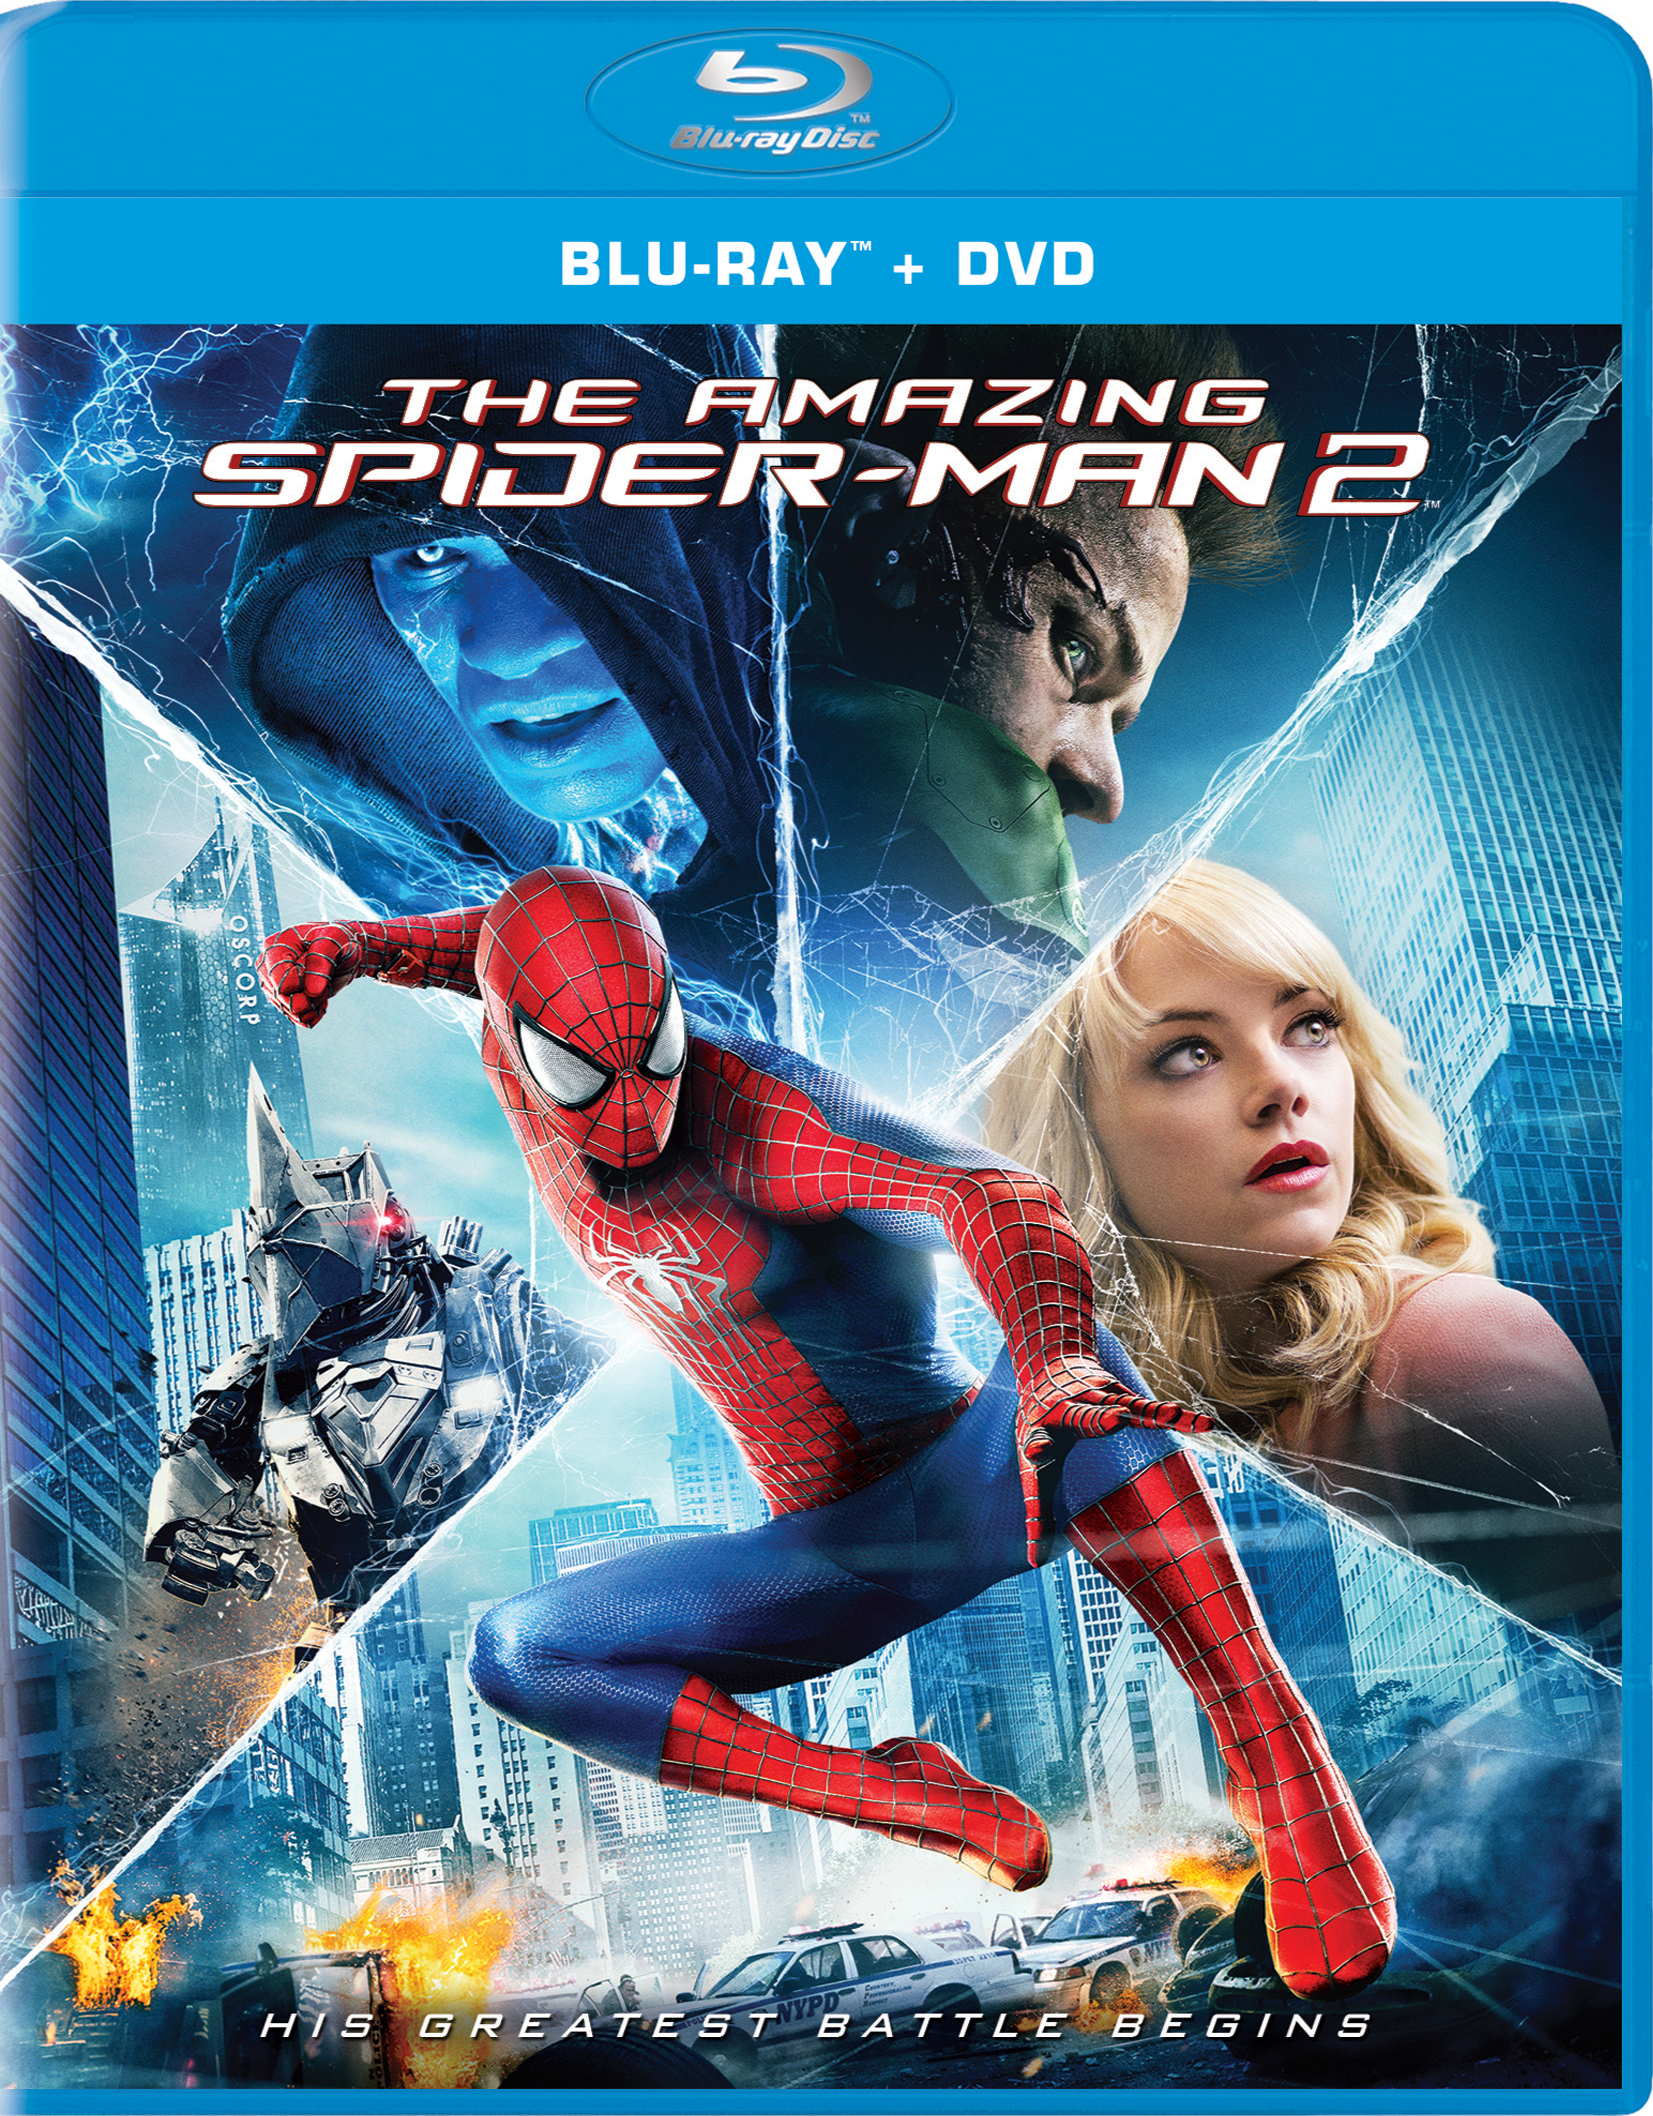 Blu-ray Sales, August 25-31: Spider-Man 2 Faces Walking